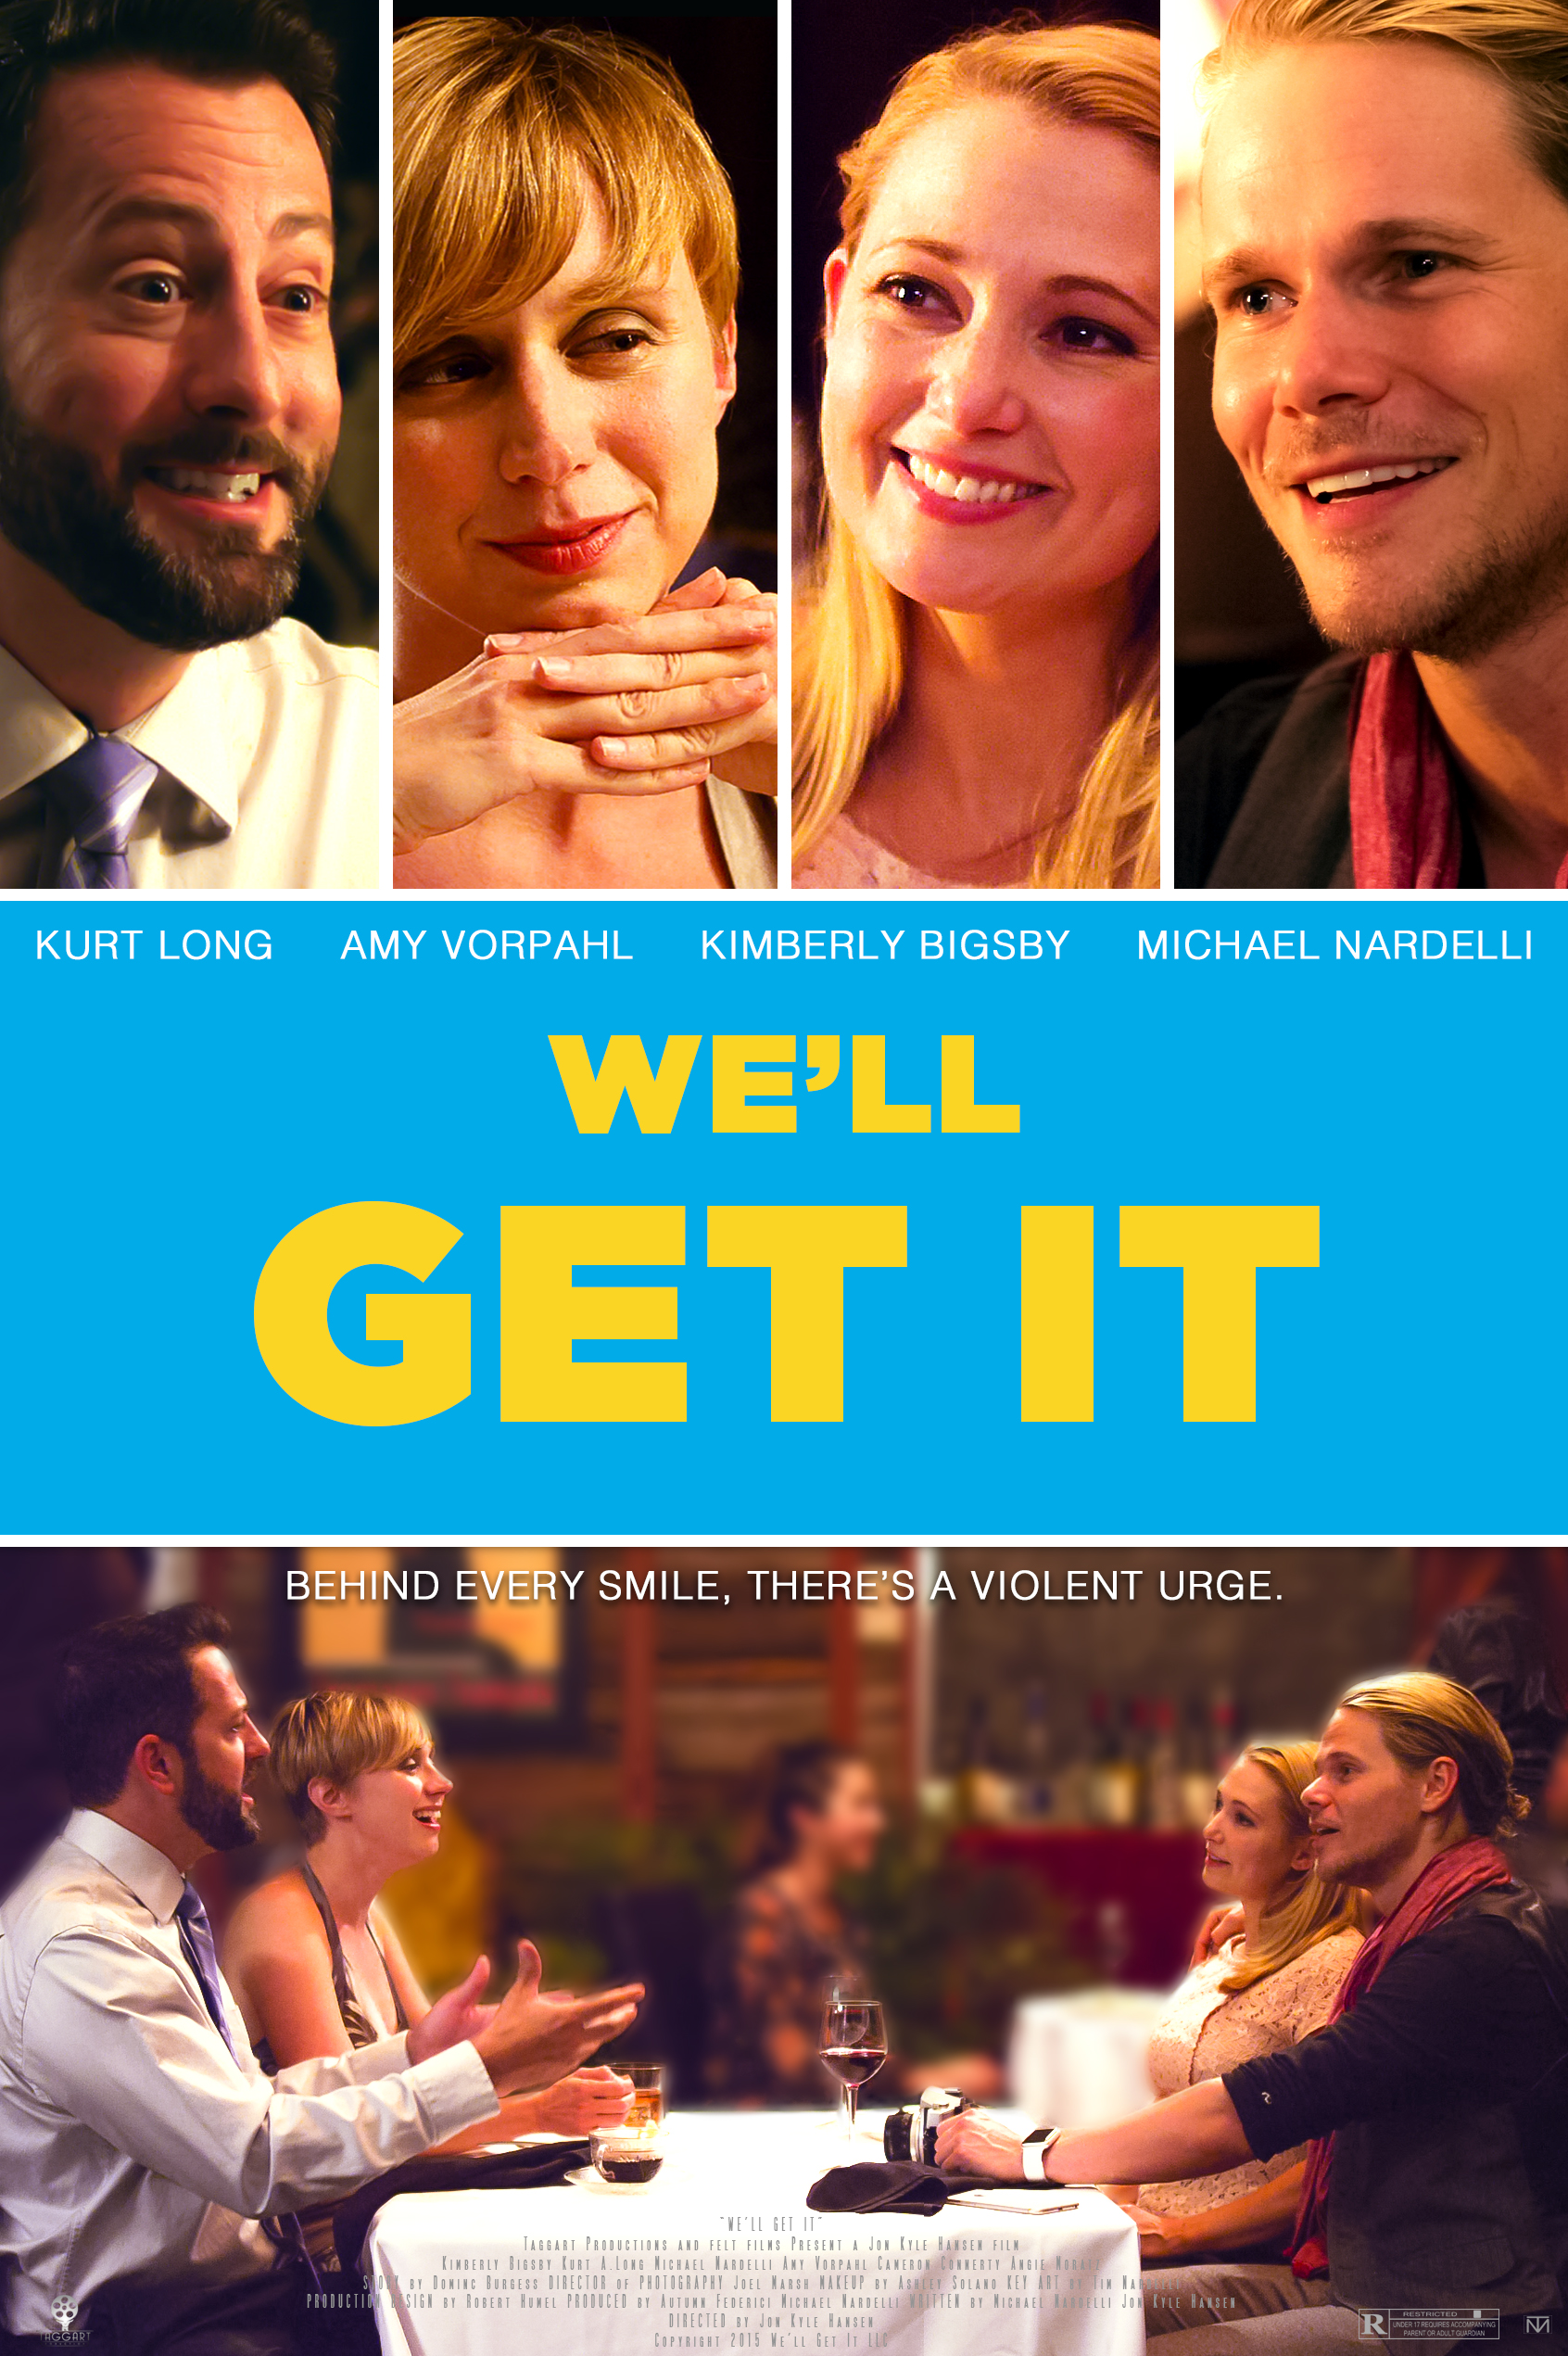 We'll Get It_Poster for hollywoodcomedyshortsff.jpg